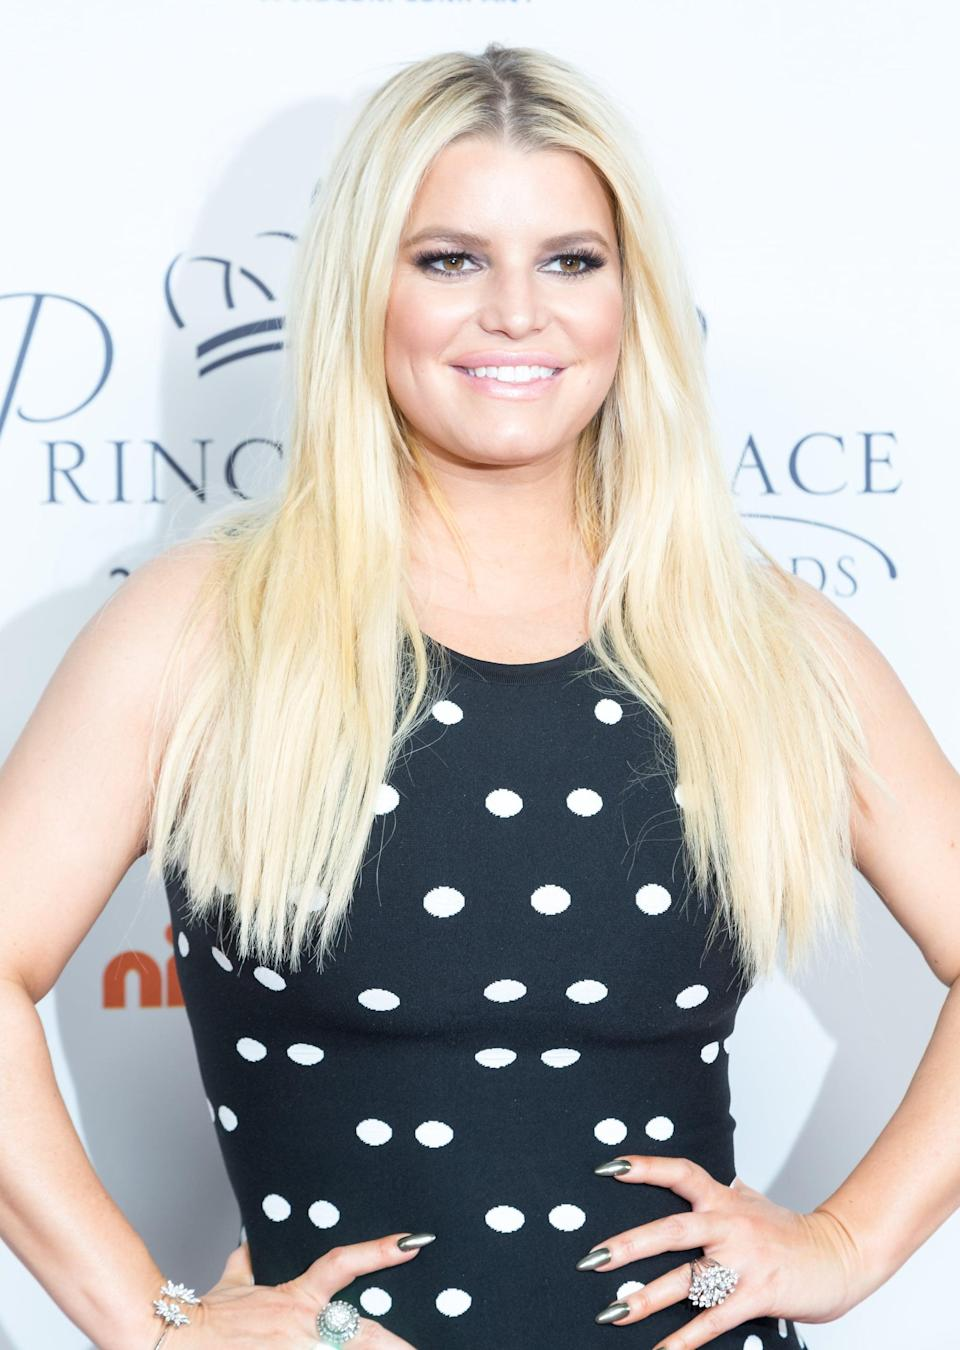 "<p>In her memoir, <strong>Open Book</strong>, the singer admitted that <a href=""https://www.usmagazine.com/celebrity-news/news/jessica-simpson-couldnt-bear-to-look-at-herself-before-tummy-tucks/"" class=""link rapid-noclick-resp"" rel=""nofollow noopener"" target=""_blank"" data-ylk=""slk:she had two tummy tucks"">she had two tummy tucks</a> against her doctor's orders after giving birth. </p> <p>""The surgery wasn't for weight loss,"" she wrote. ""I weighed 107 pounds when I planned the surgery. I wanted to get rid of the stretch marks and loose skin left sagging from my back-to-back pregnancies.""</p> <p>Simpson's doctor was concerned about the first surgery because of the toll that her alcohol and pill addiction had taken on her body. She ended up being fine, but she was still unhappy with the ""loose skin that hung over my pants,"" so she scheduled a second tummy tuck after, but this time, she had a few complications.</p> <p>""I got an infection - colitis - and was vomiting so much I thought I was going to bust my sutures,"" she said. The singer later admitted that she realized that plastic surgery wasn't a cure-all for what was happening with her mentally: ""Really, it's about how you feel emotionally, and I was still just as hard on myself once those stitches were out.""</p>"